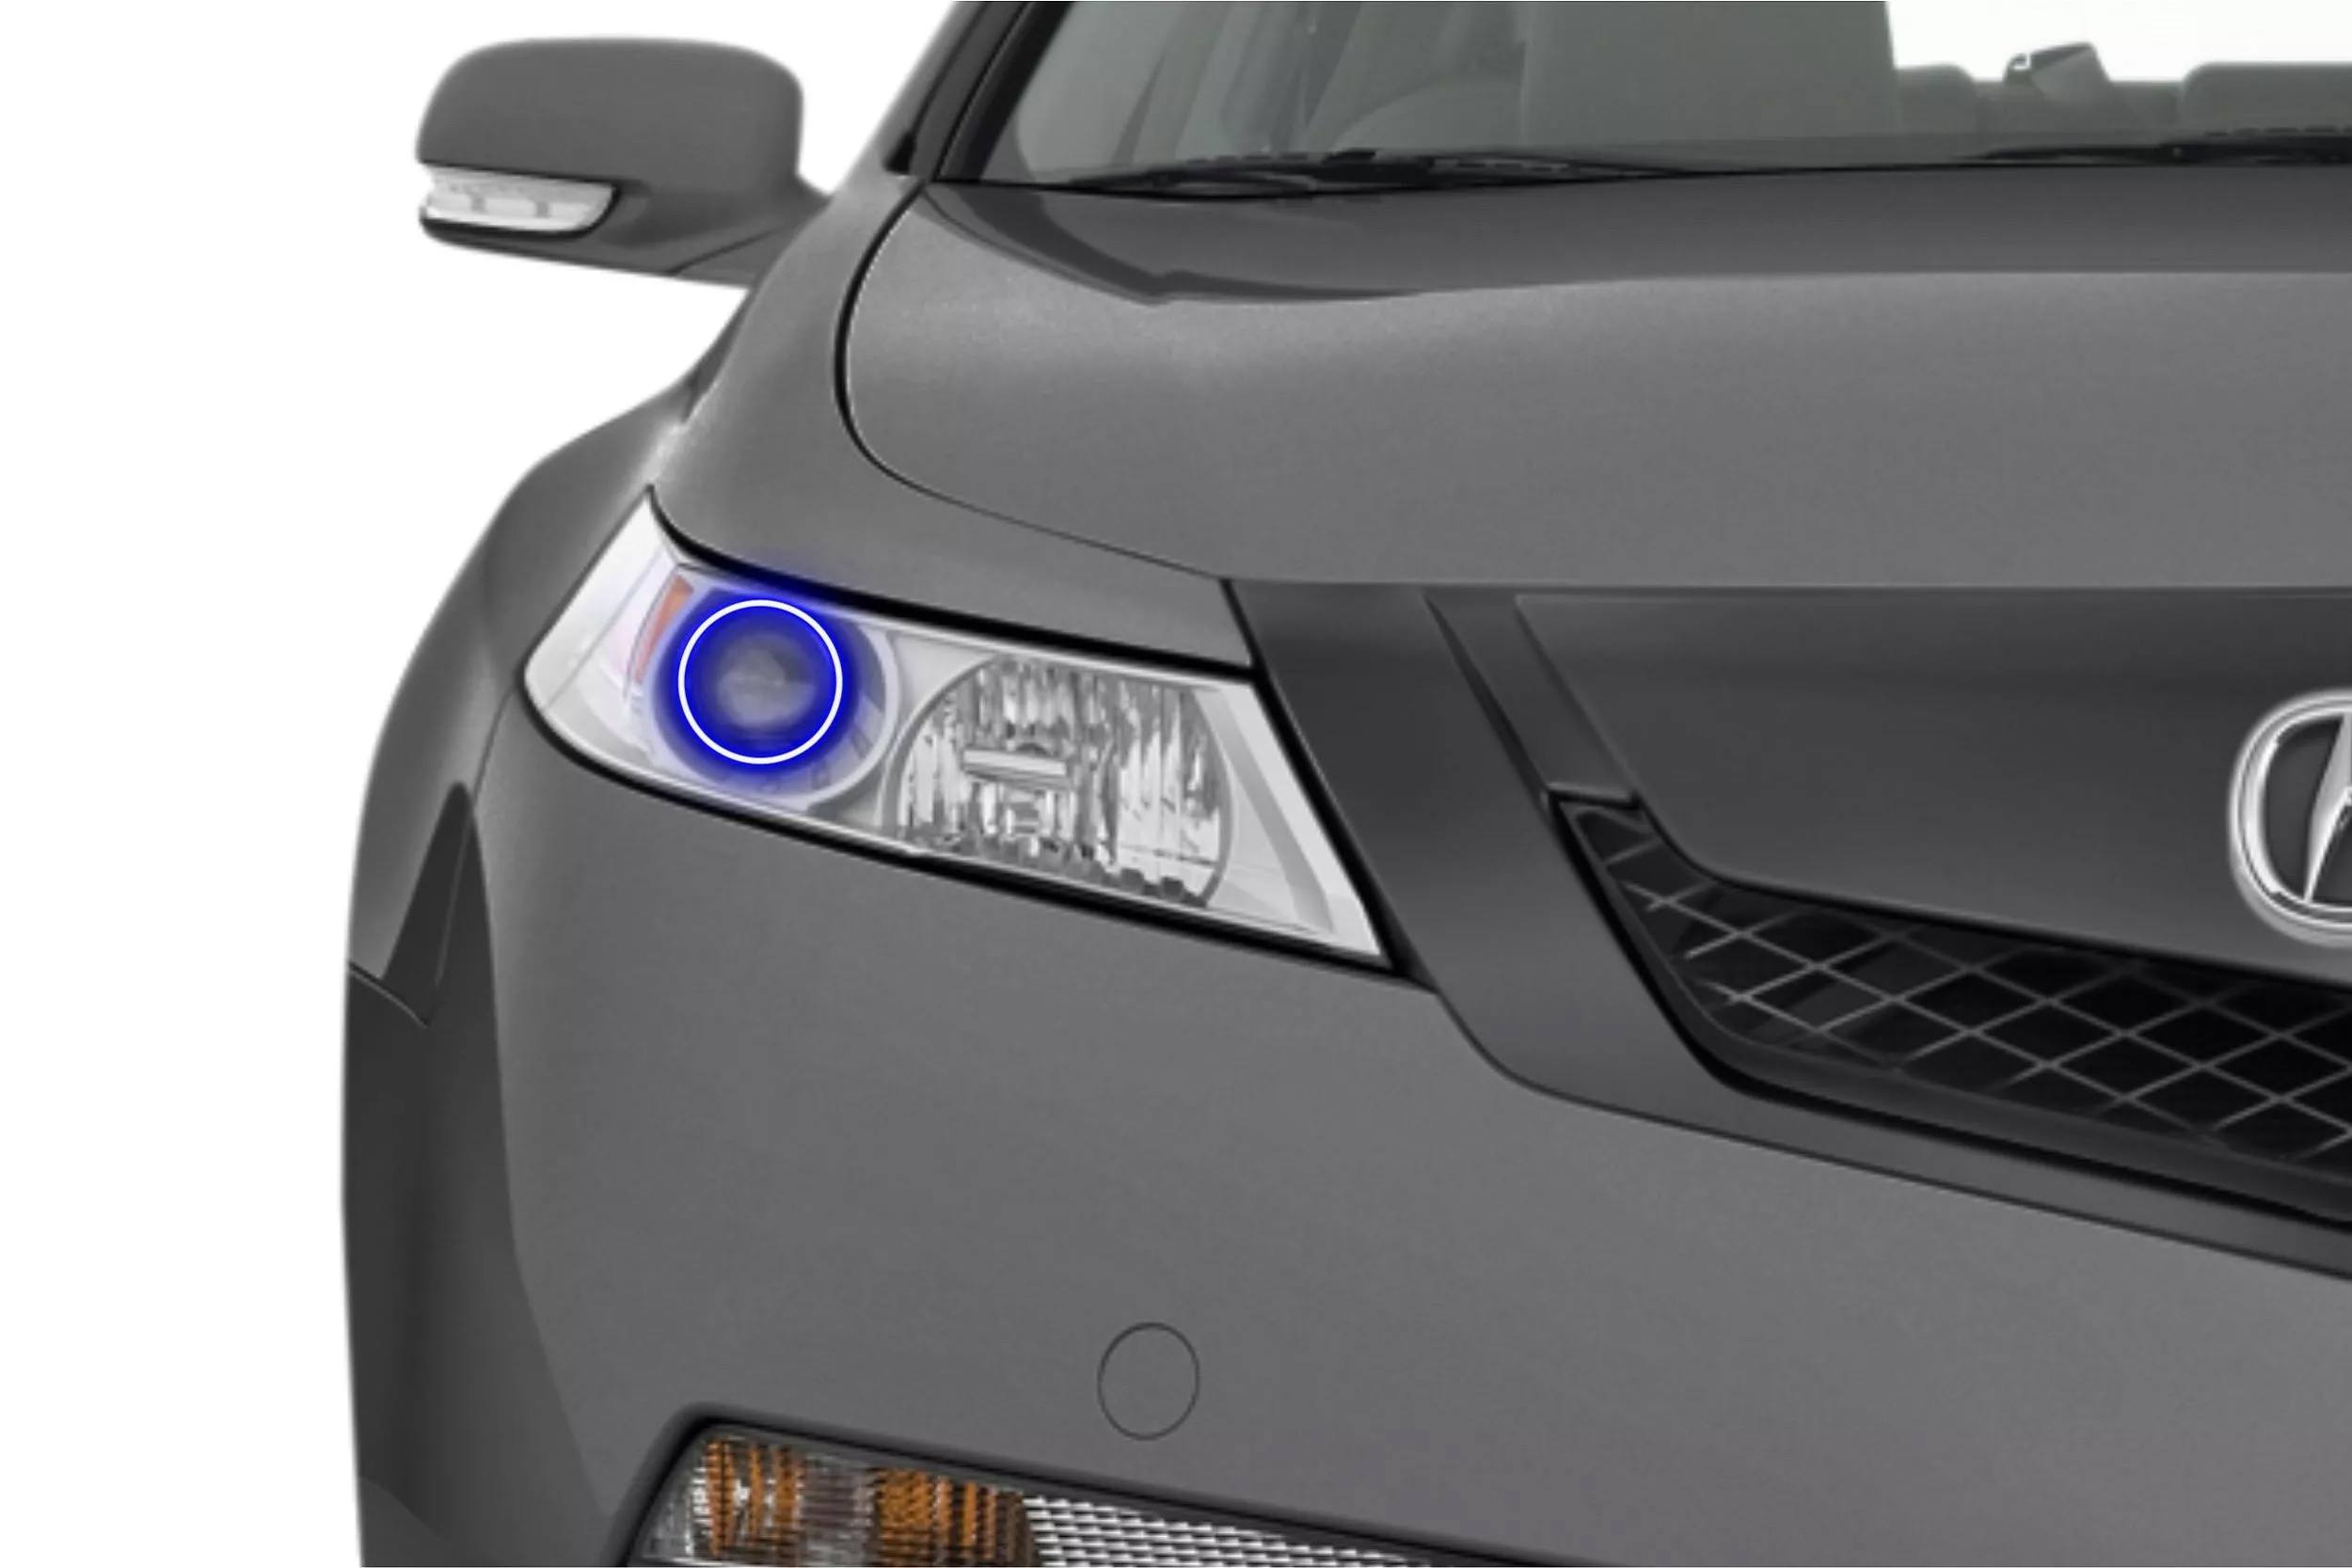 a review chrome rnr modern air tasteful lights tl bumper acura lower the headlights are incorporated tsx front fog nicely dam into automotive slim blog grille and features